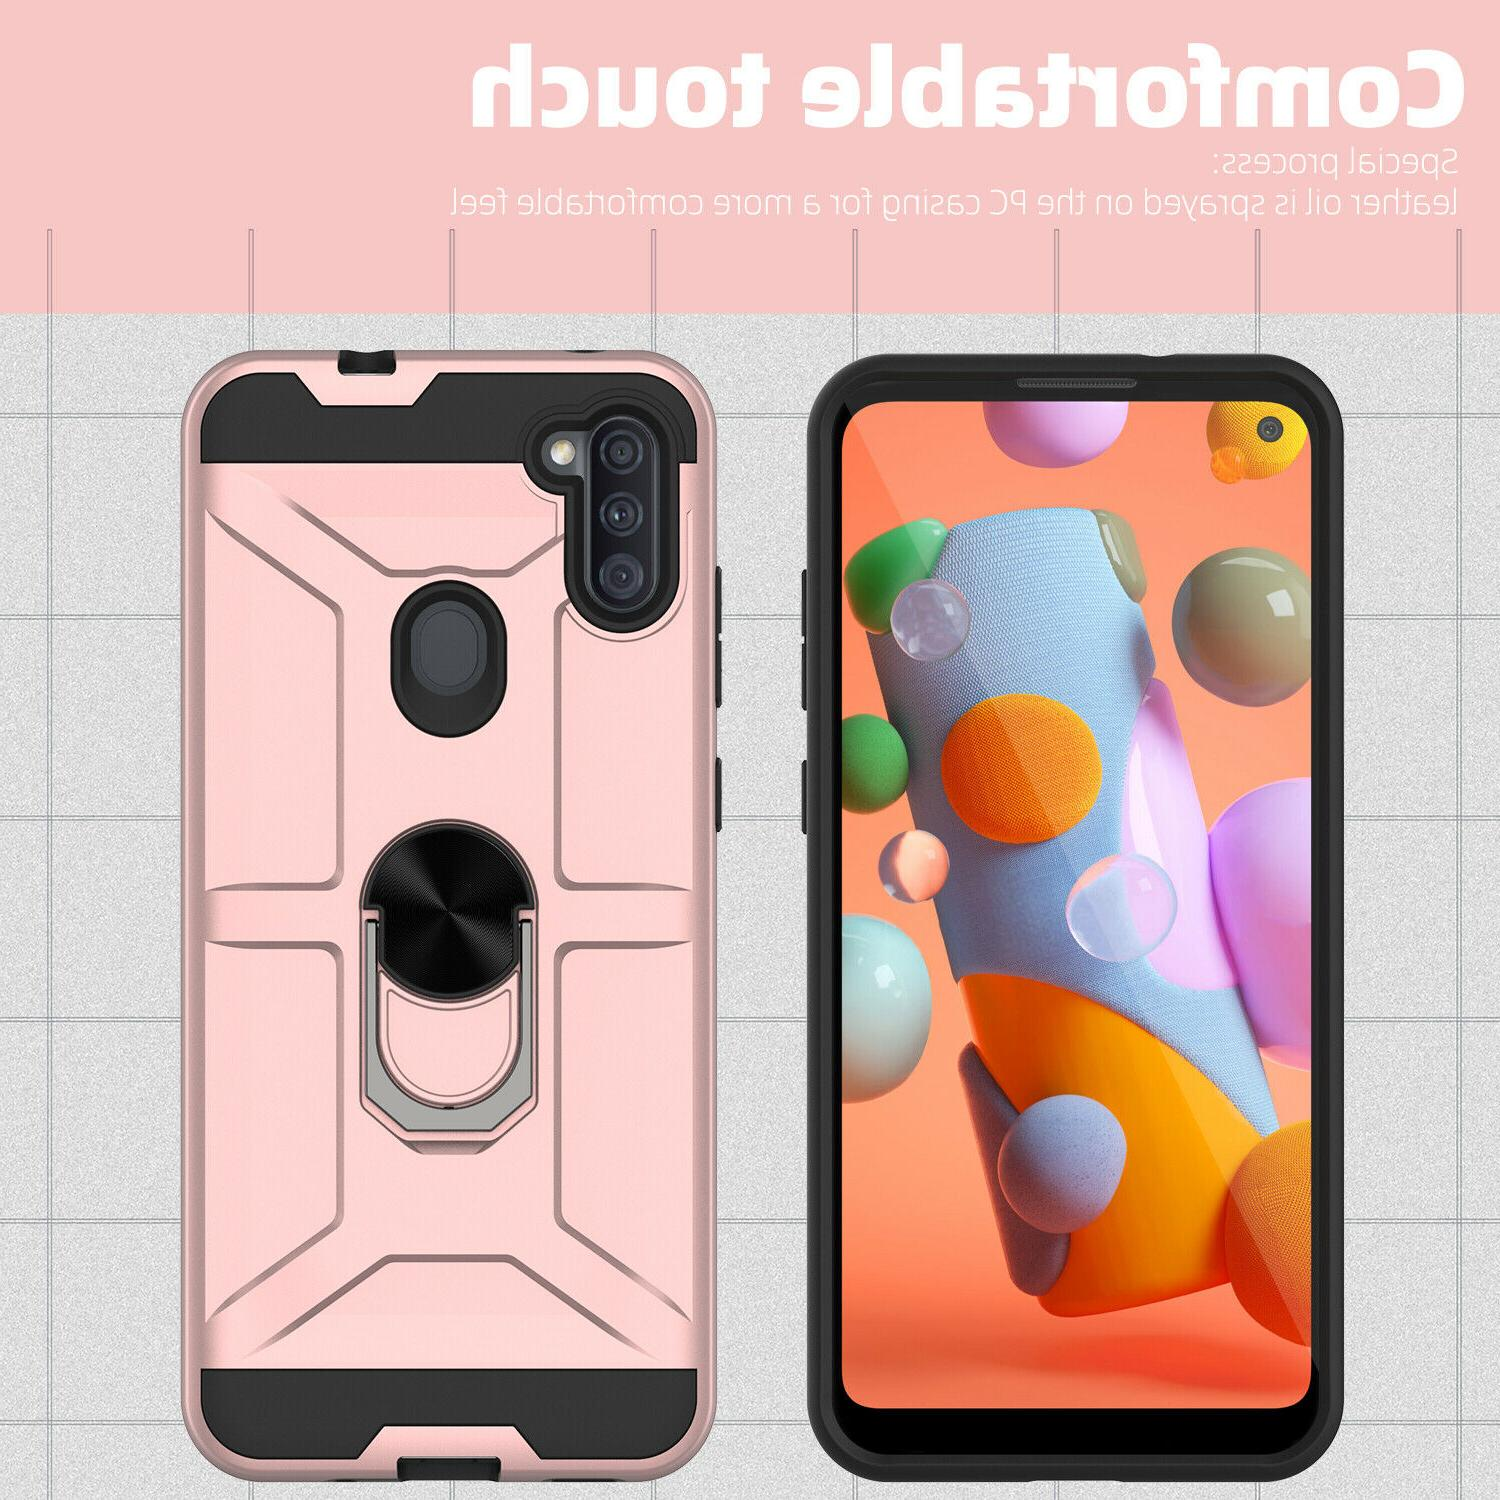 Case, Kickstand Cover + Tempered Glass Protector